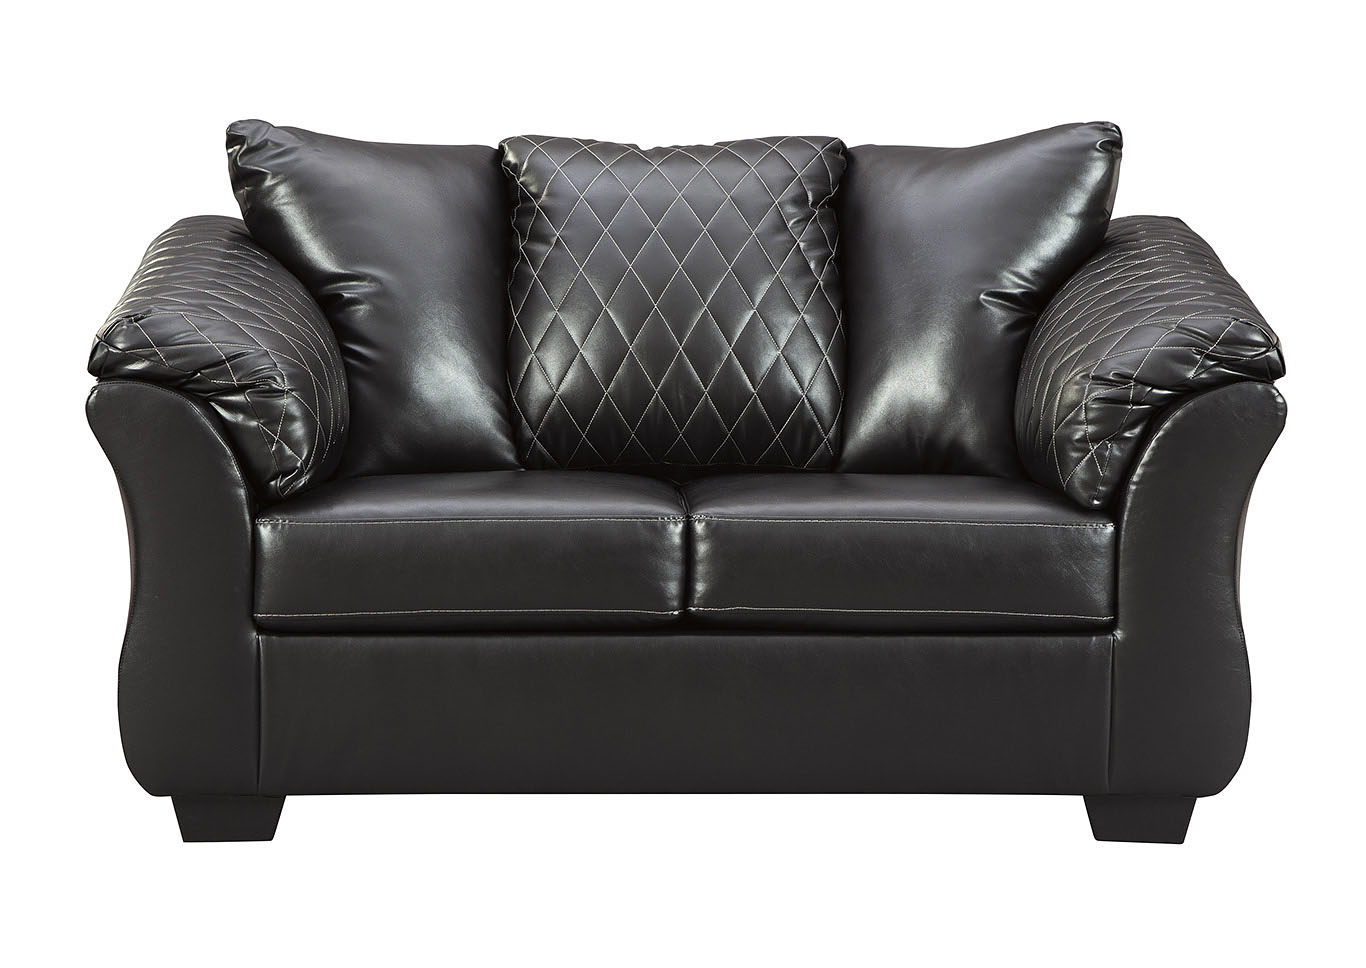 Bertrillo Black Loveseat,Signature Design By Ashley